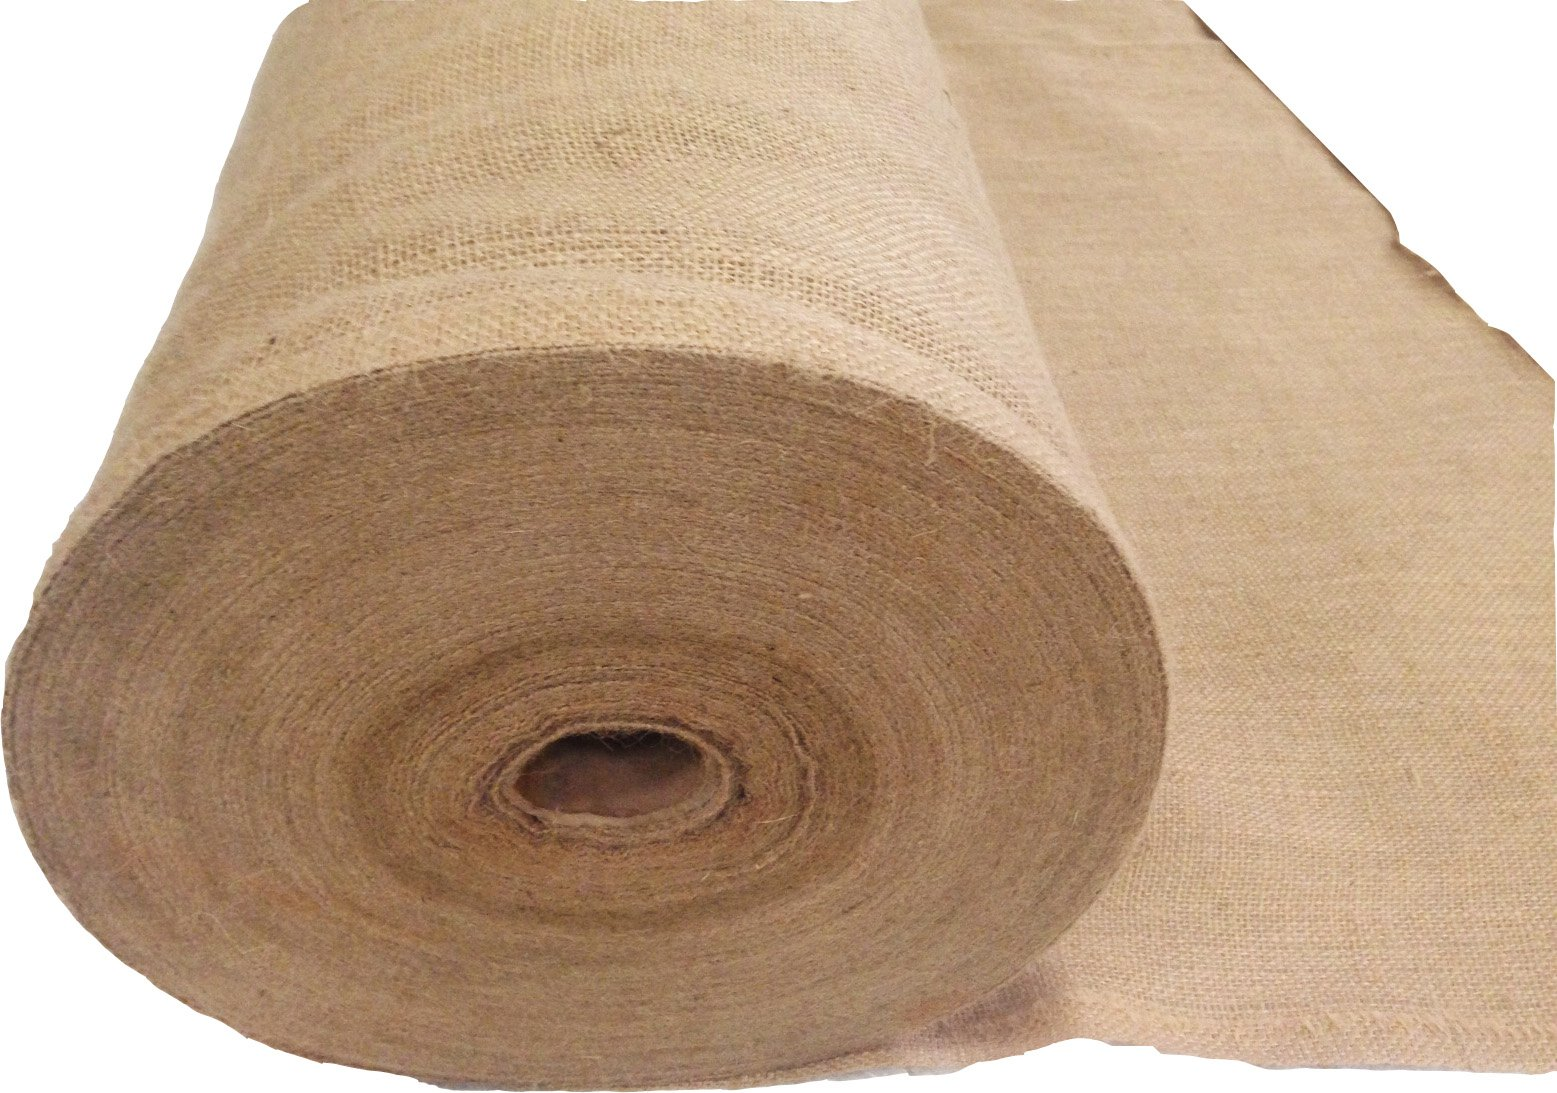 Sandbaggy Burlap Fabric Roll- for Garden, Yard, Wedding, Craft, Decorating Tables - 40 inch x 300 ft (1) by Sandbaggy (Image #1)